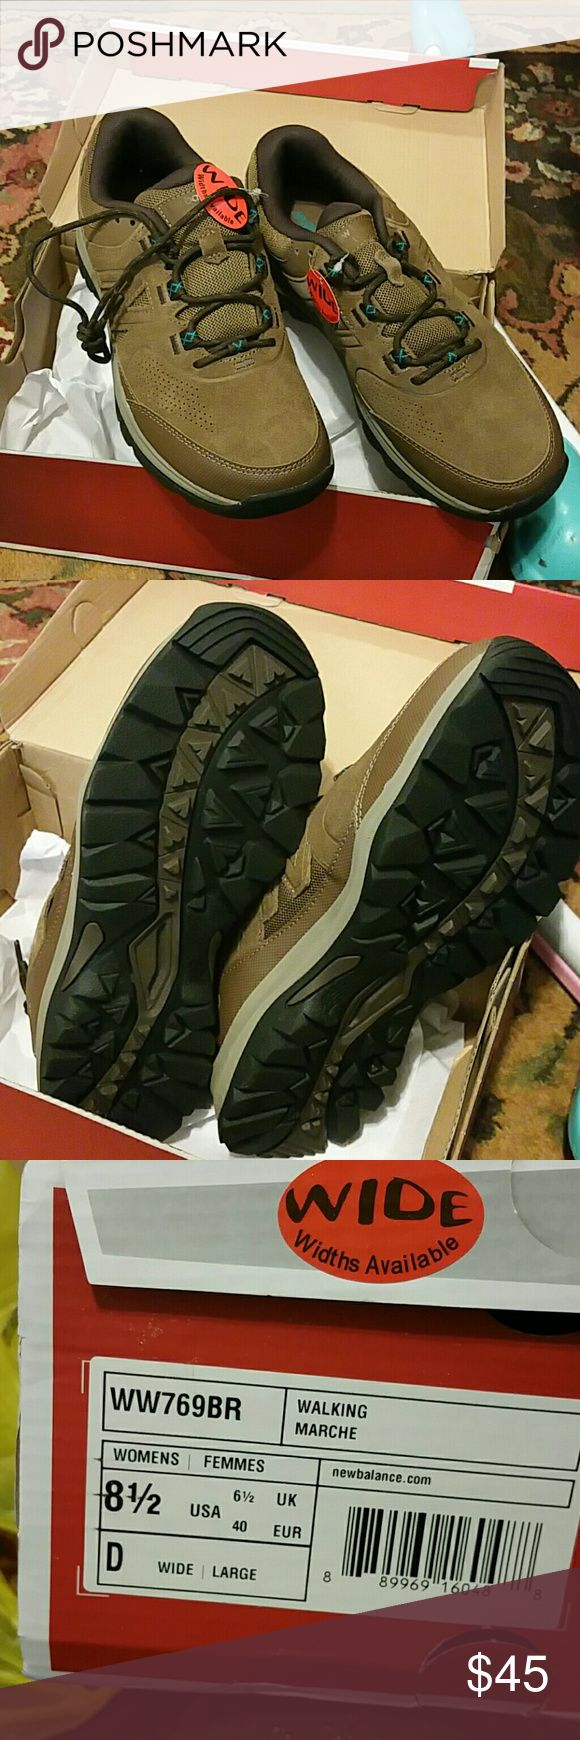 New Balance walking shoes New in box, never worn!! New Balance Shoes Athletic Shoes